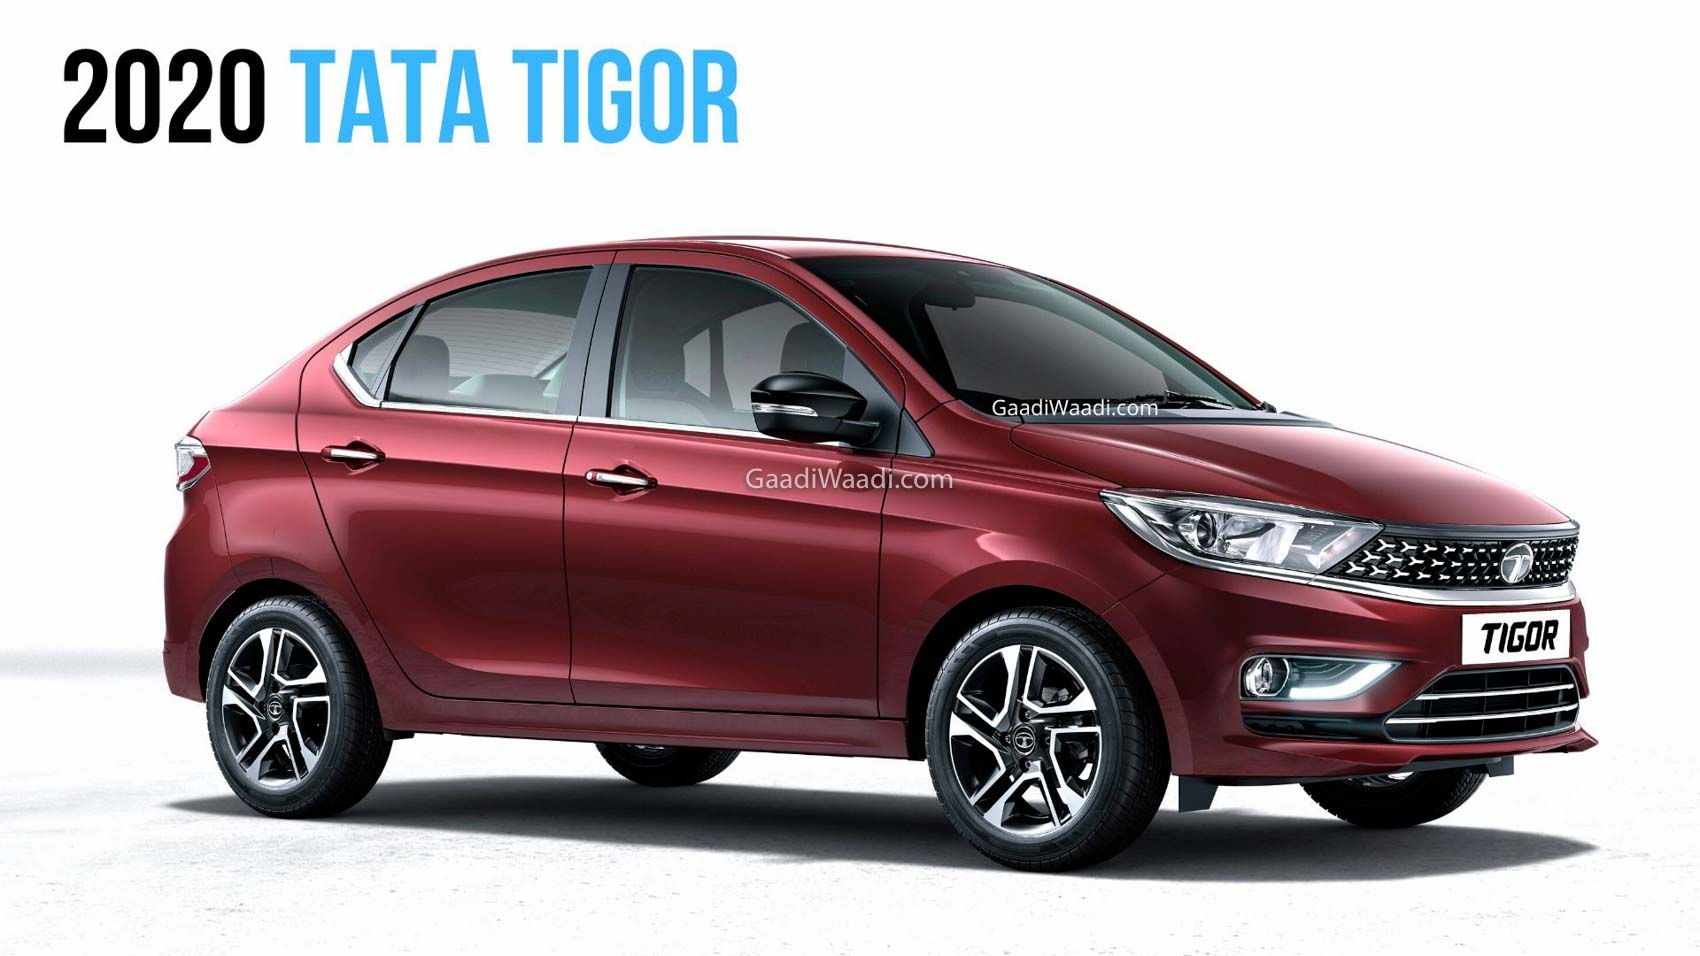 BS6 2020 Tata Tigor Launched From Rs. 5.75 Lakh – Walkaround Video